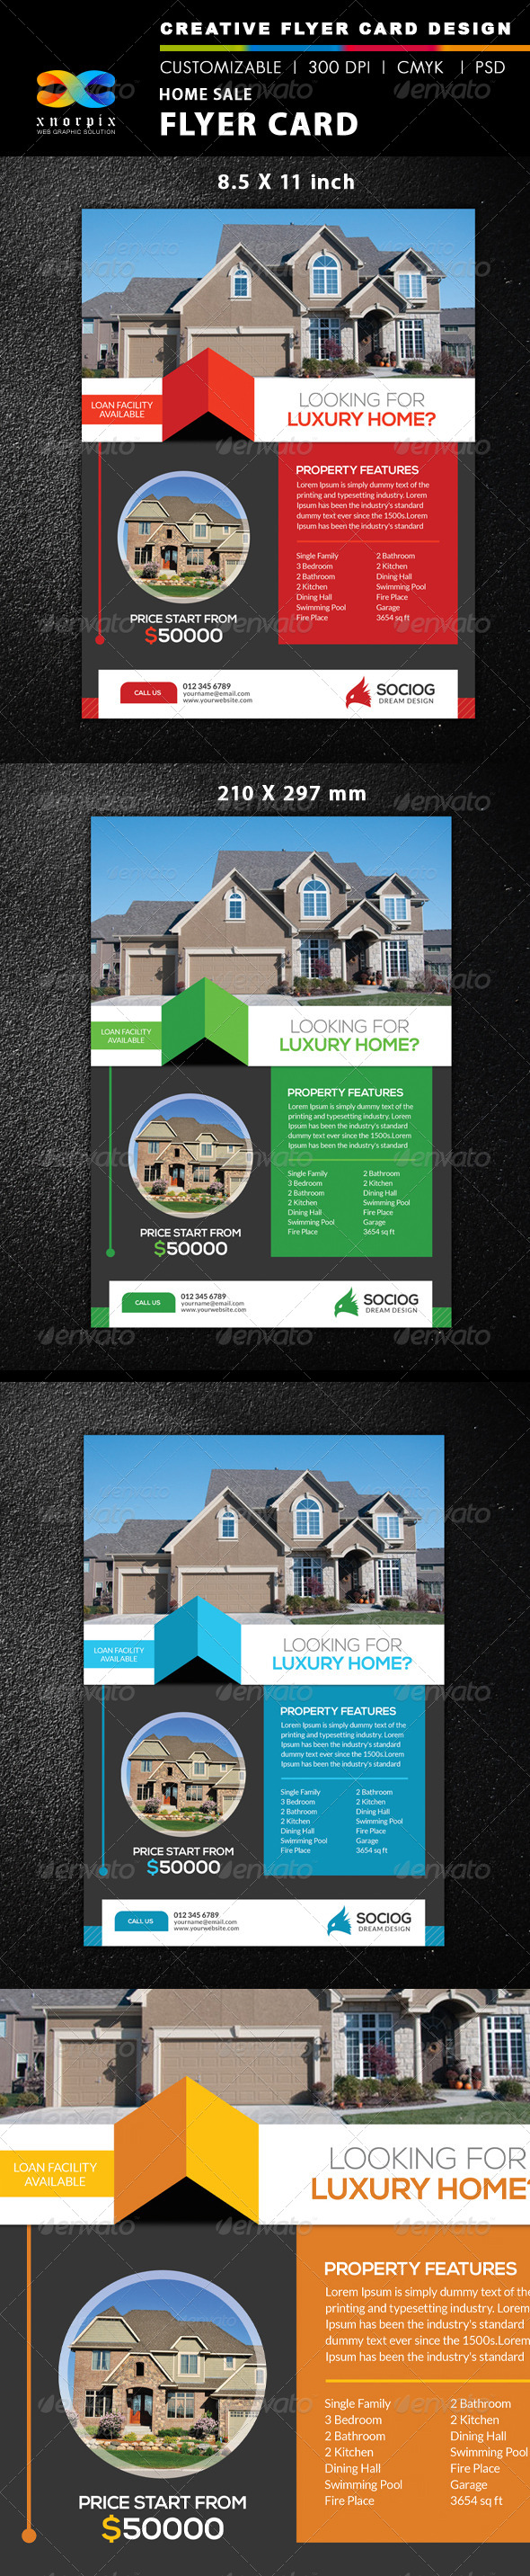 Home Sale Flyer - Corporate Flyers